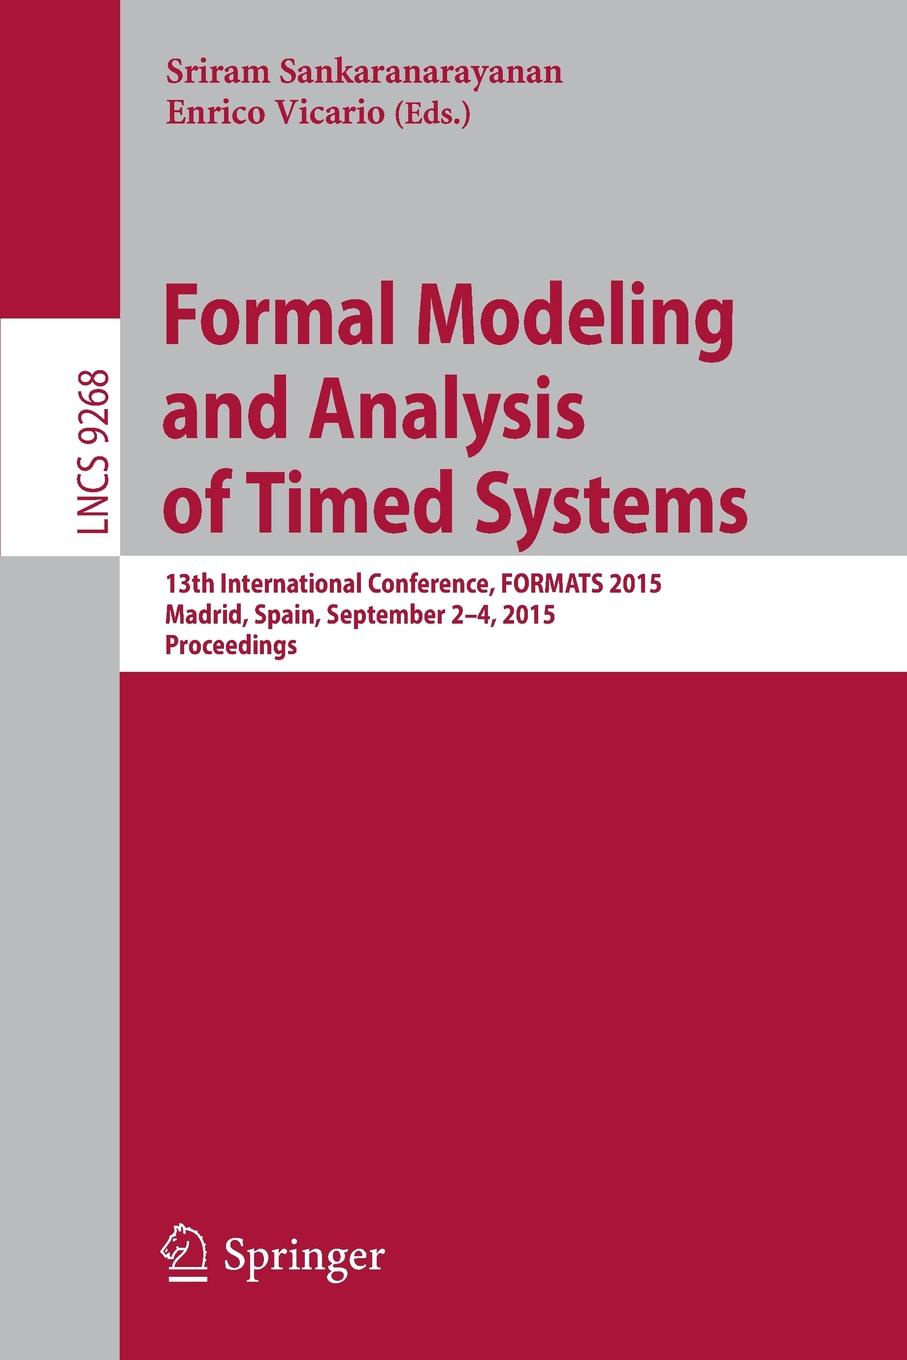 Formal Modeling and Analysis of Timed Systems. 13th International Conference, FORMATS 2015, Madrid, Spain, September 2-4, 2015, Proceedings modeling and analysis of manufacturing systems